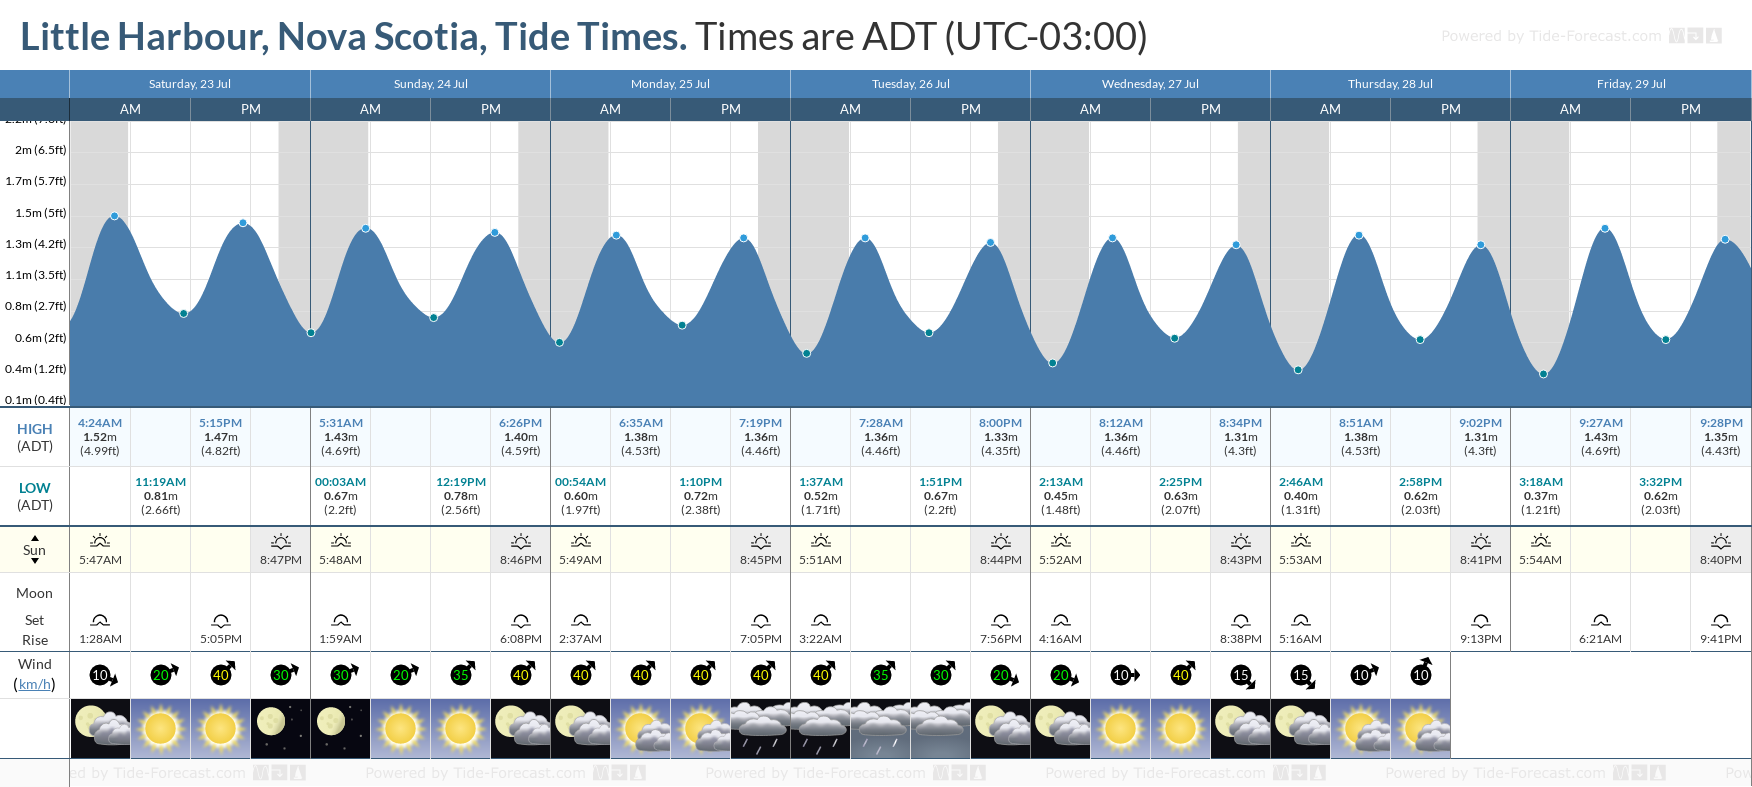 Little Harbour, Nova Scotia Tide Chart including high and low tide tide times for the next 7 days